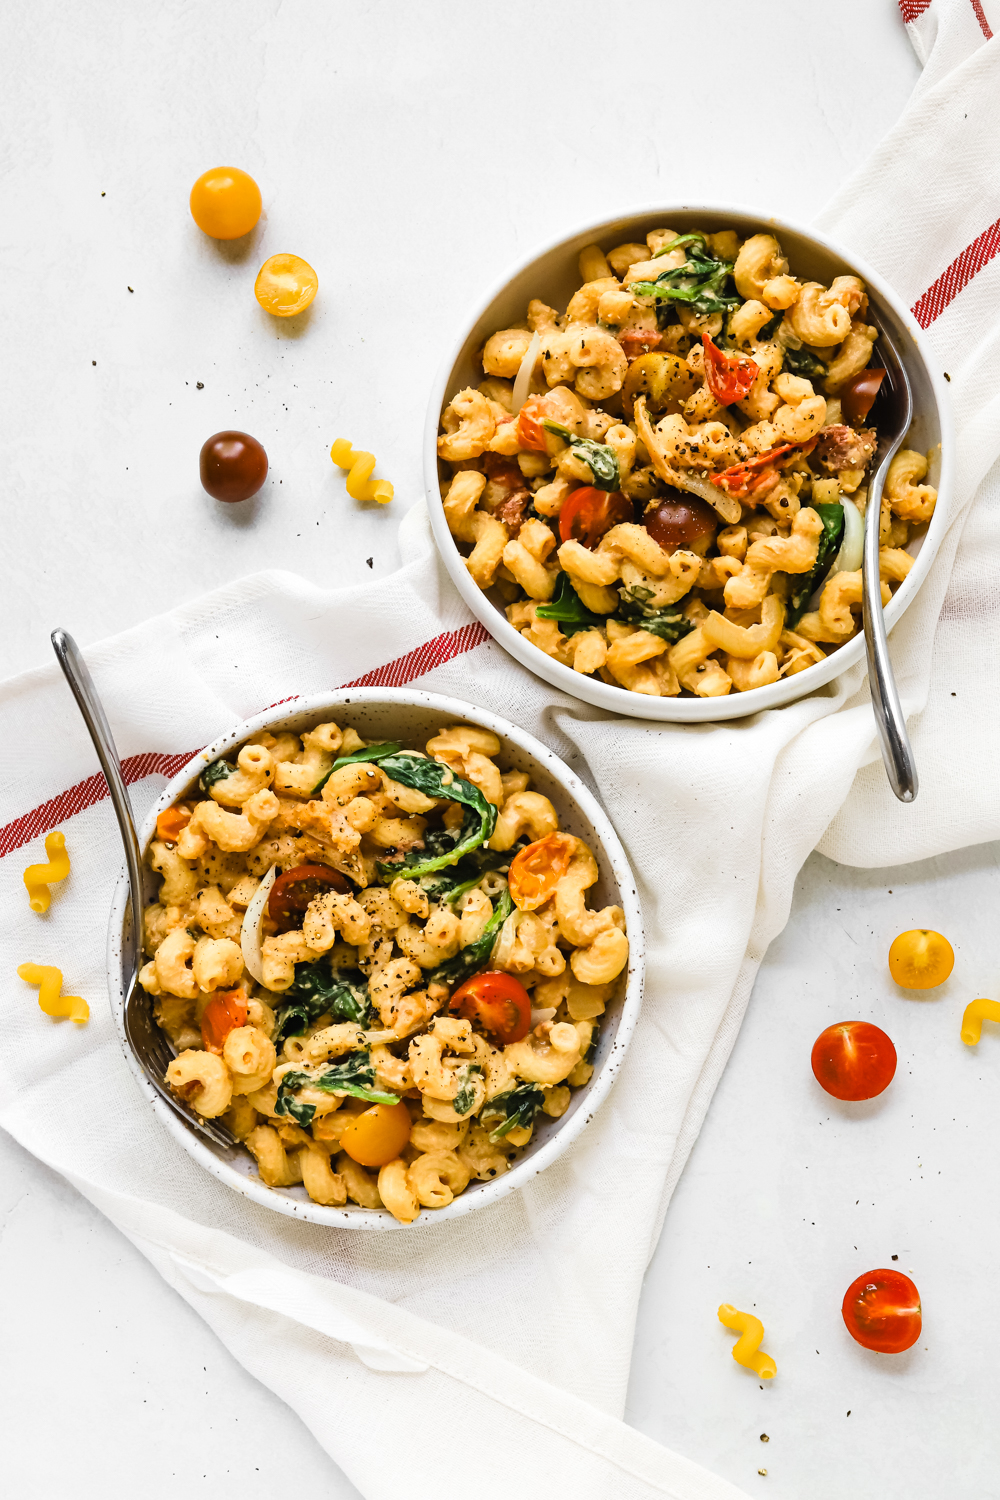 Two big bowls of hummus pasta with veggies.